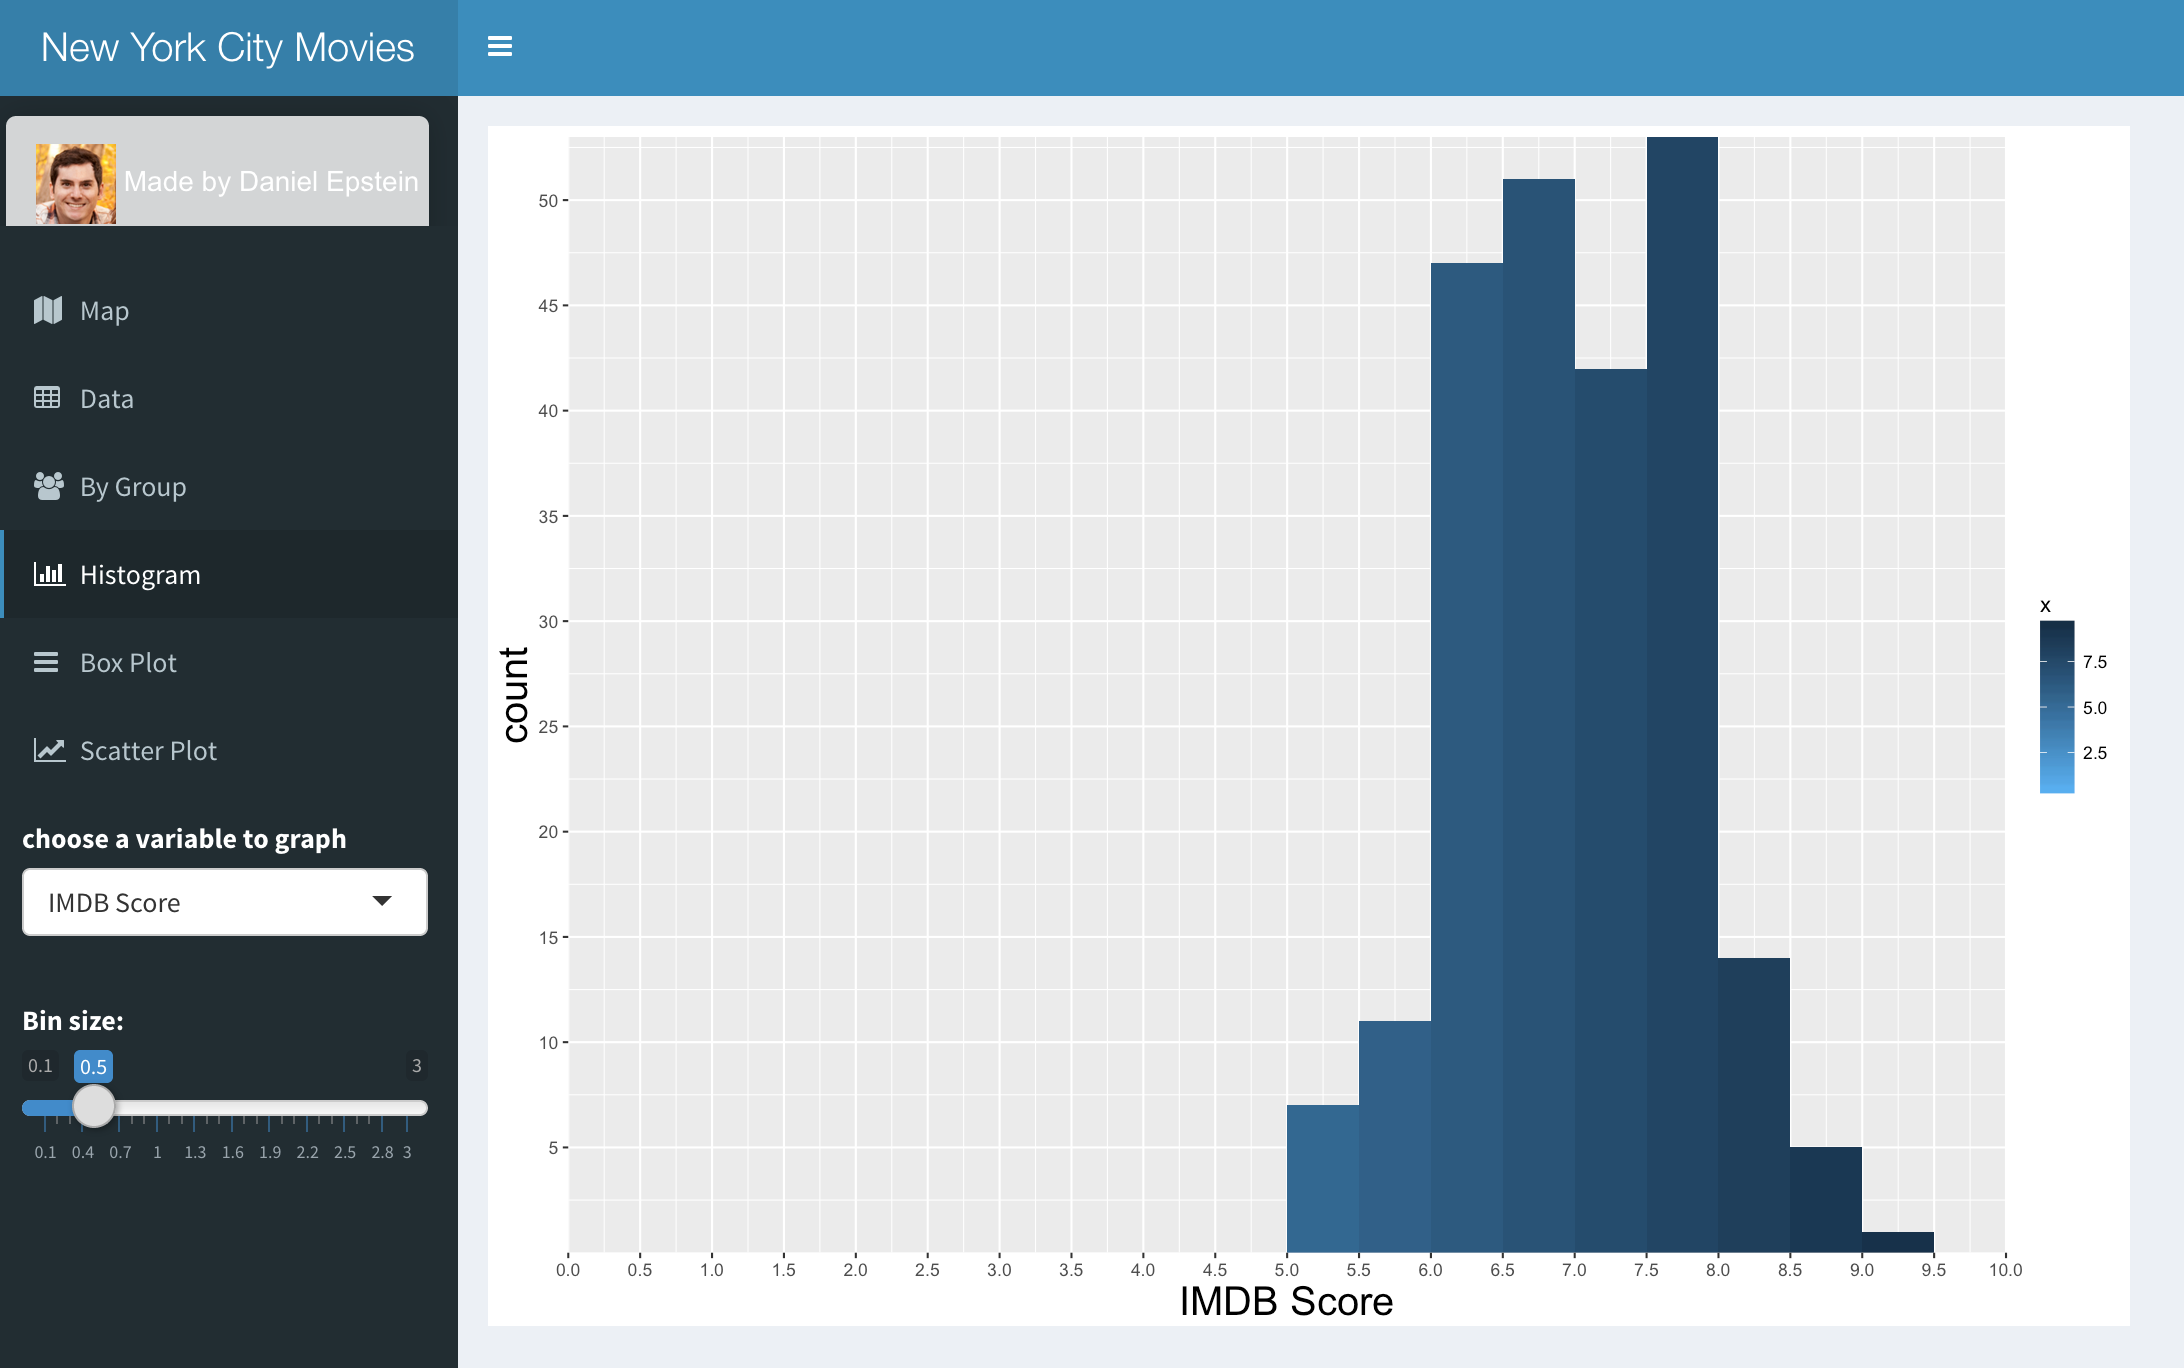 Histogram of IMDB Scores